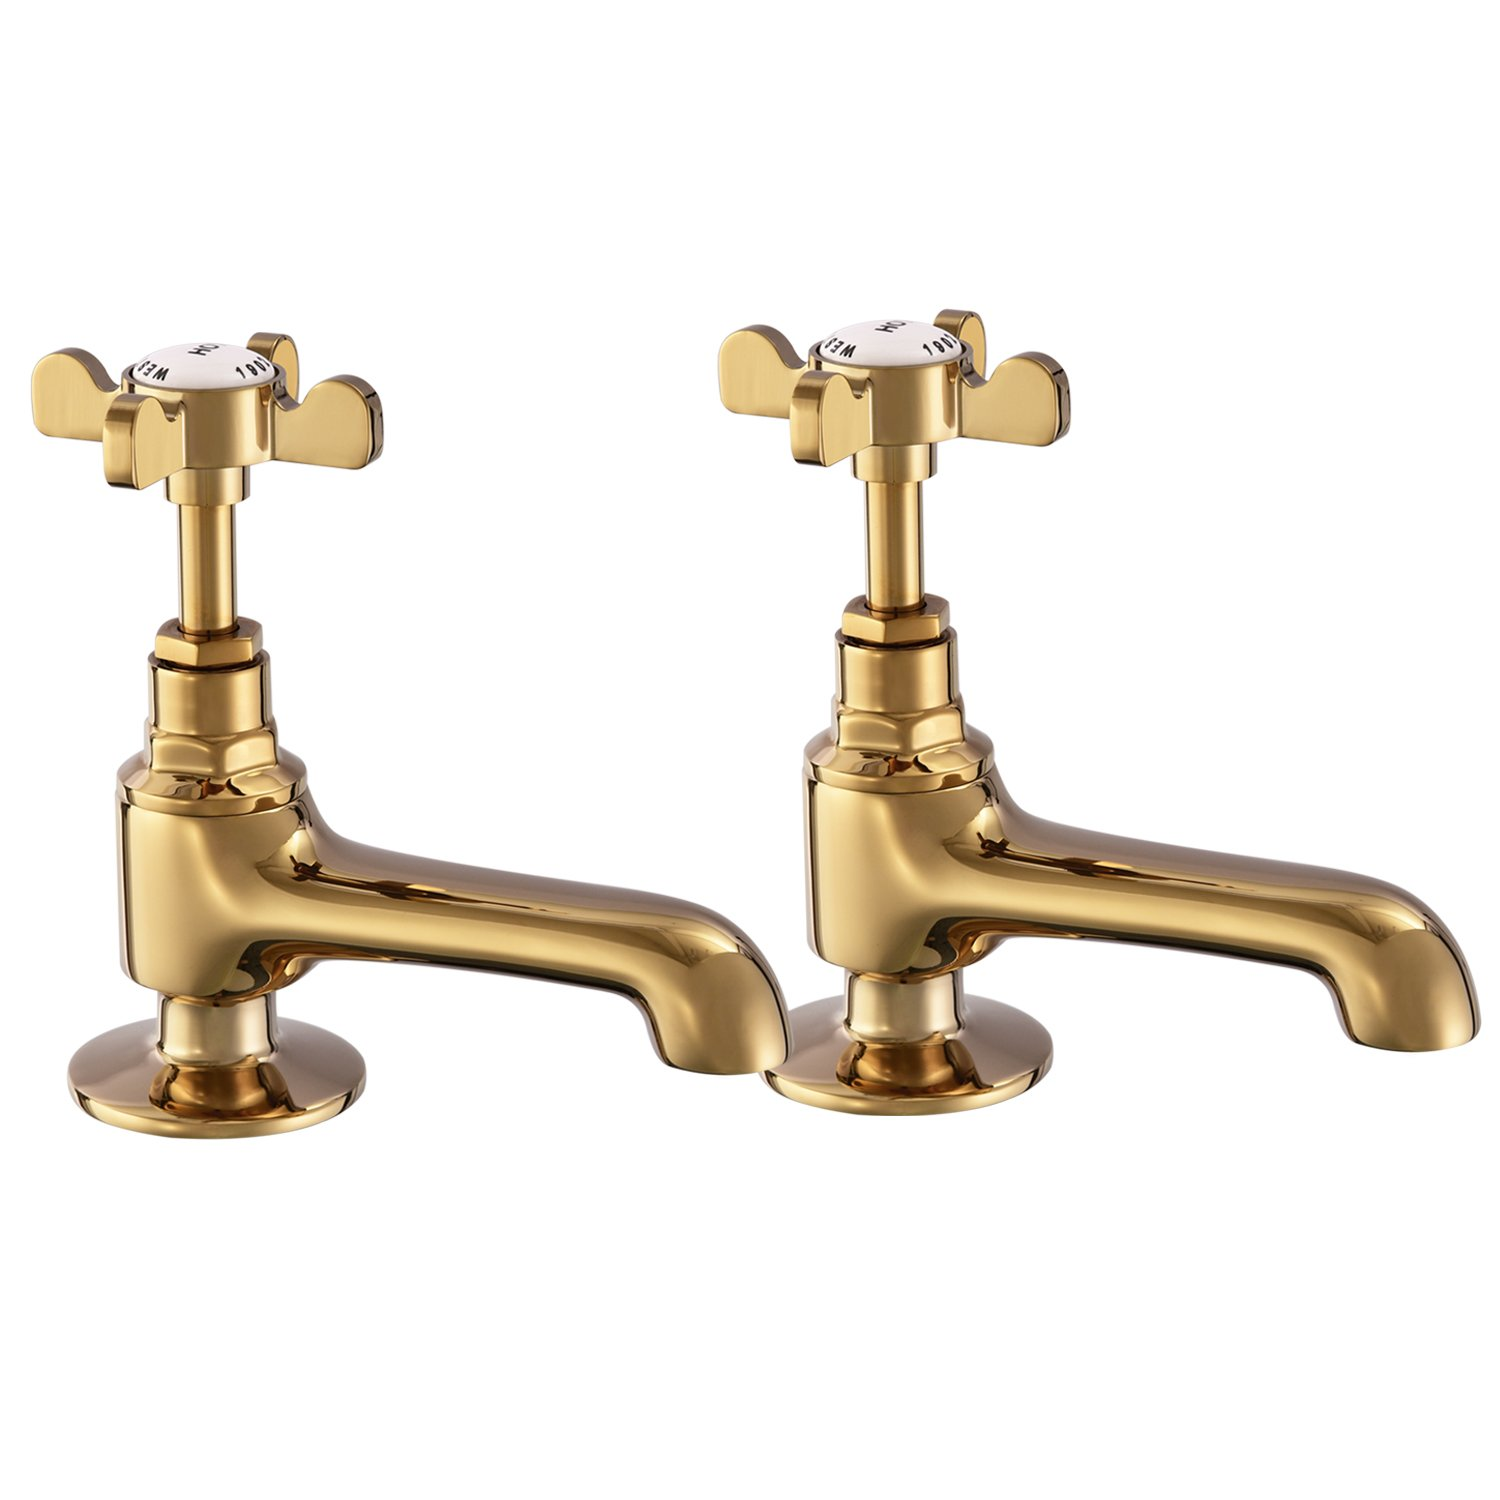 Basin Tap Pair Bronze Basin Sink Hot and Cold Taps Cross Handles Bathroom Taps Traditional Bathroom Faucet Vintage Peppermint